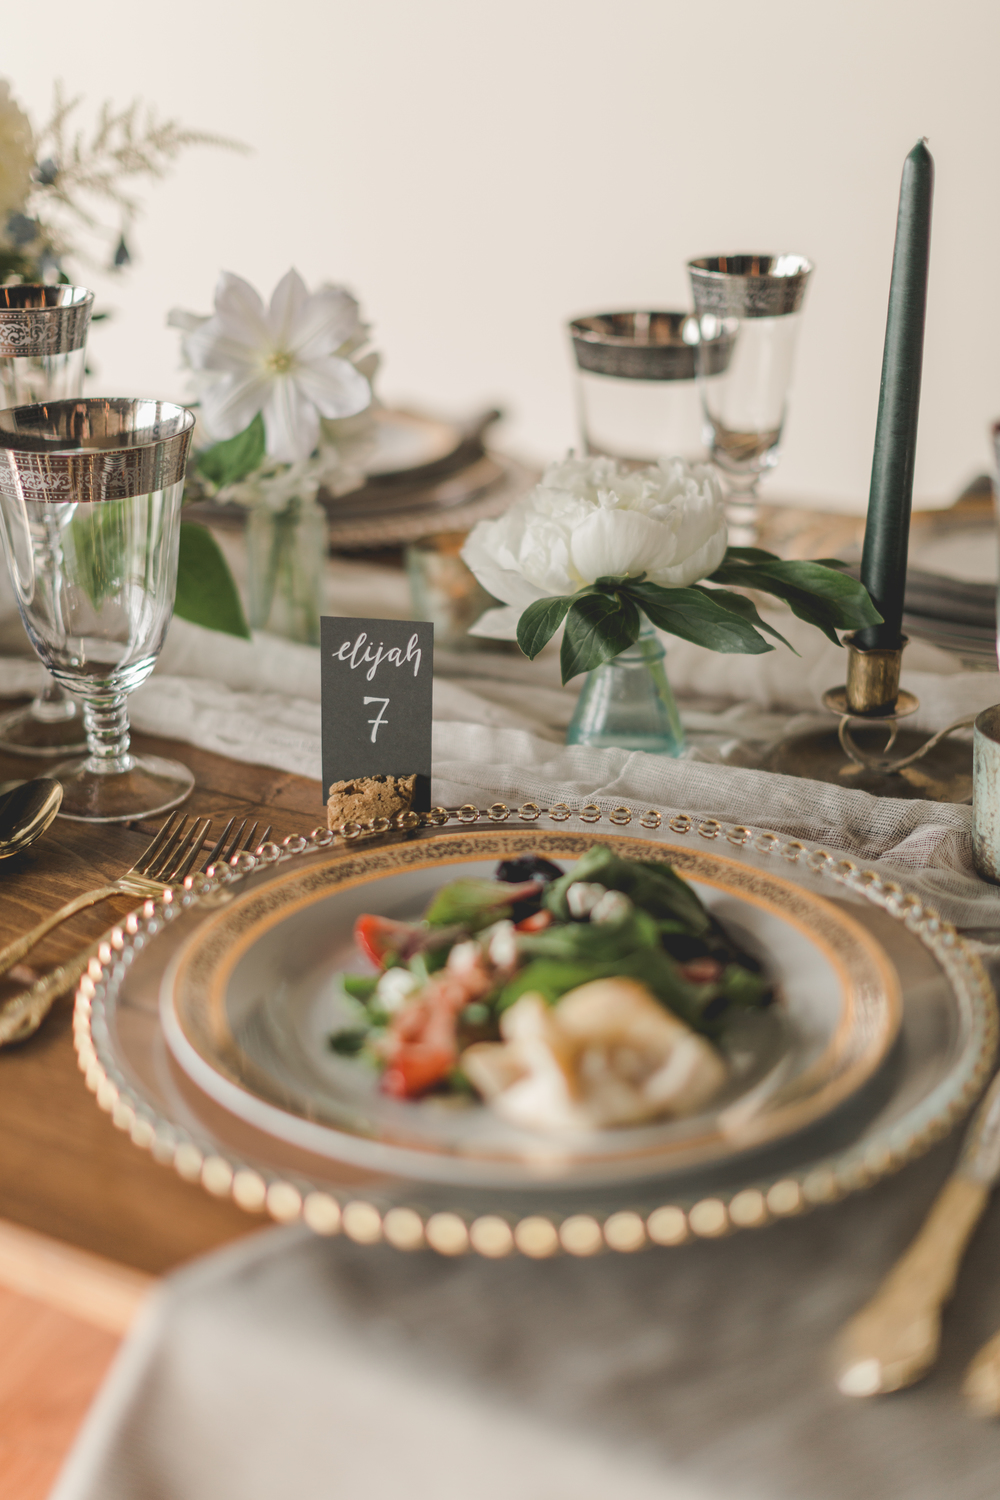 Whaling_Museum_Styled_Shoot_food_4-19-16-11.jpg